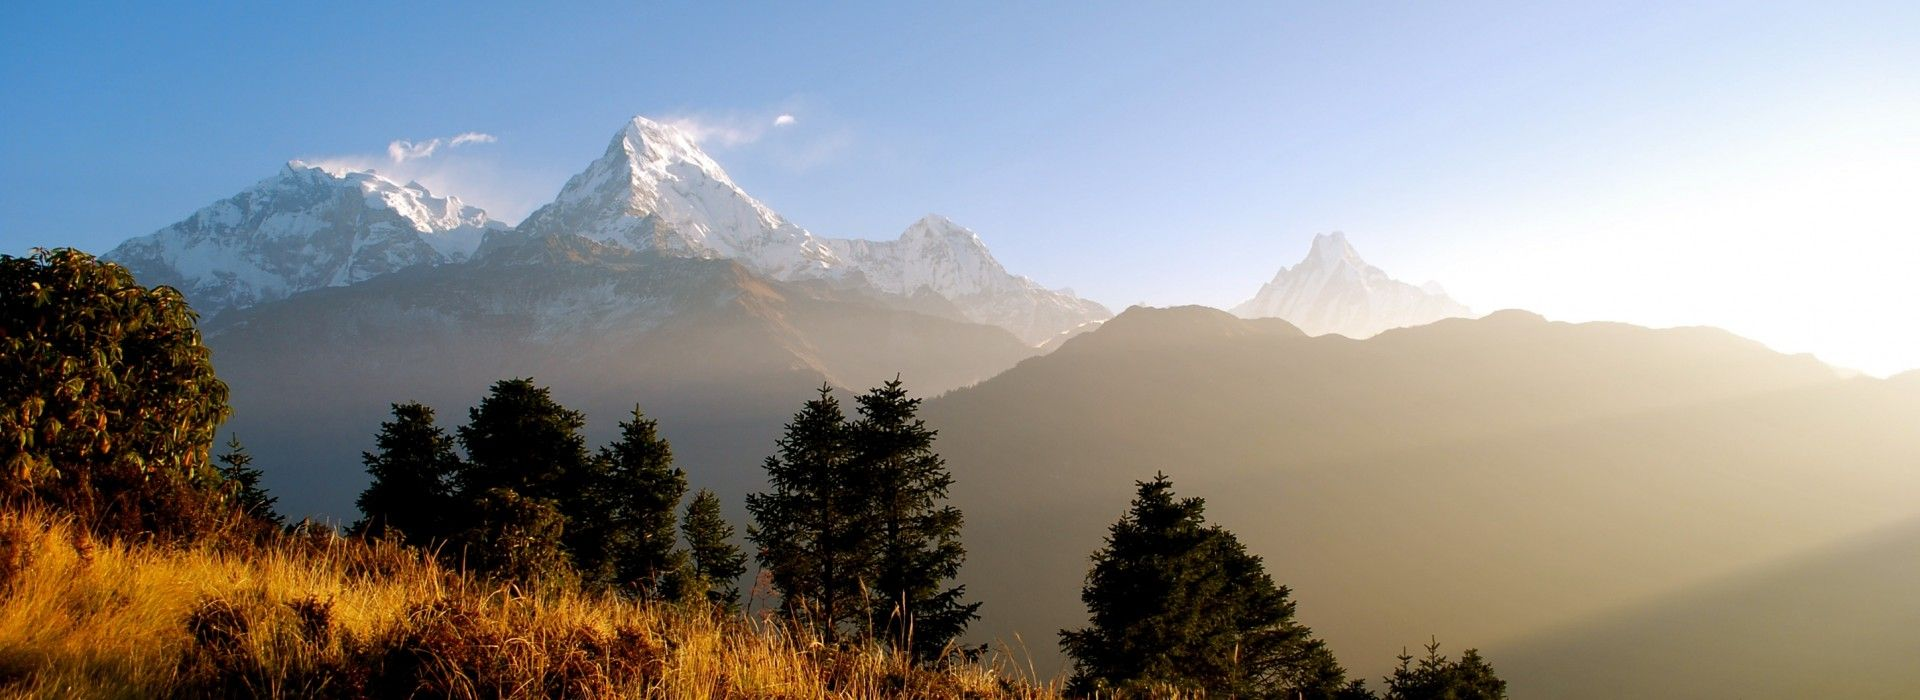 Manaslu-Tsum Valley Tours